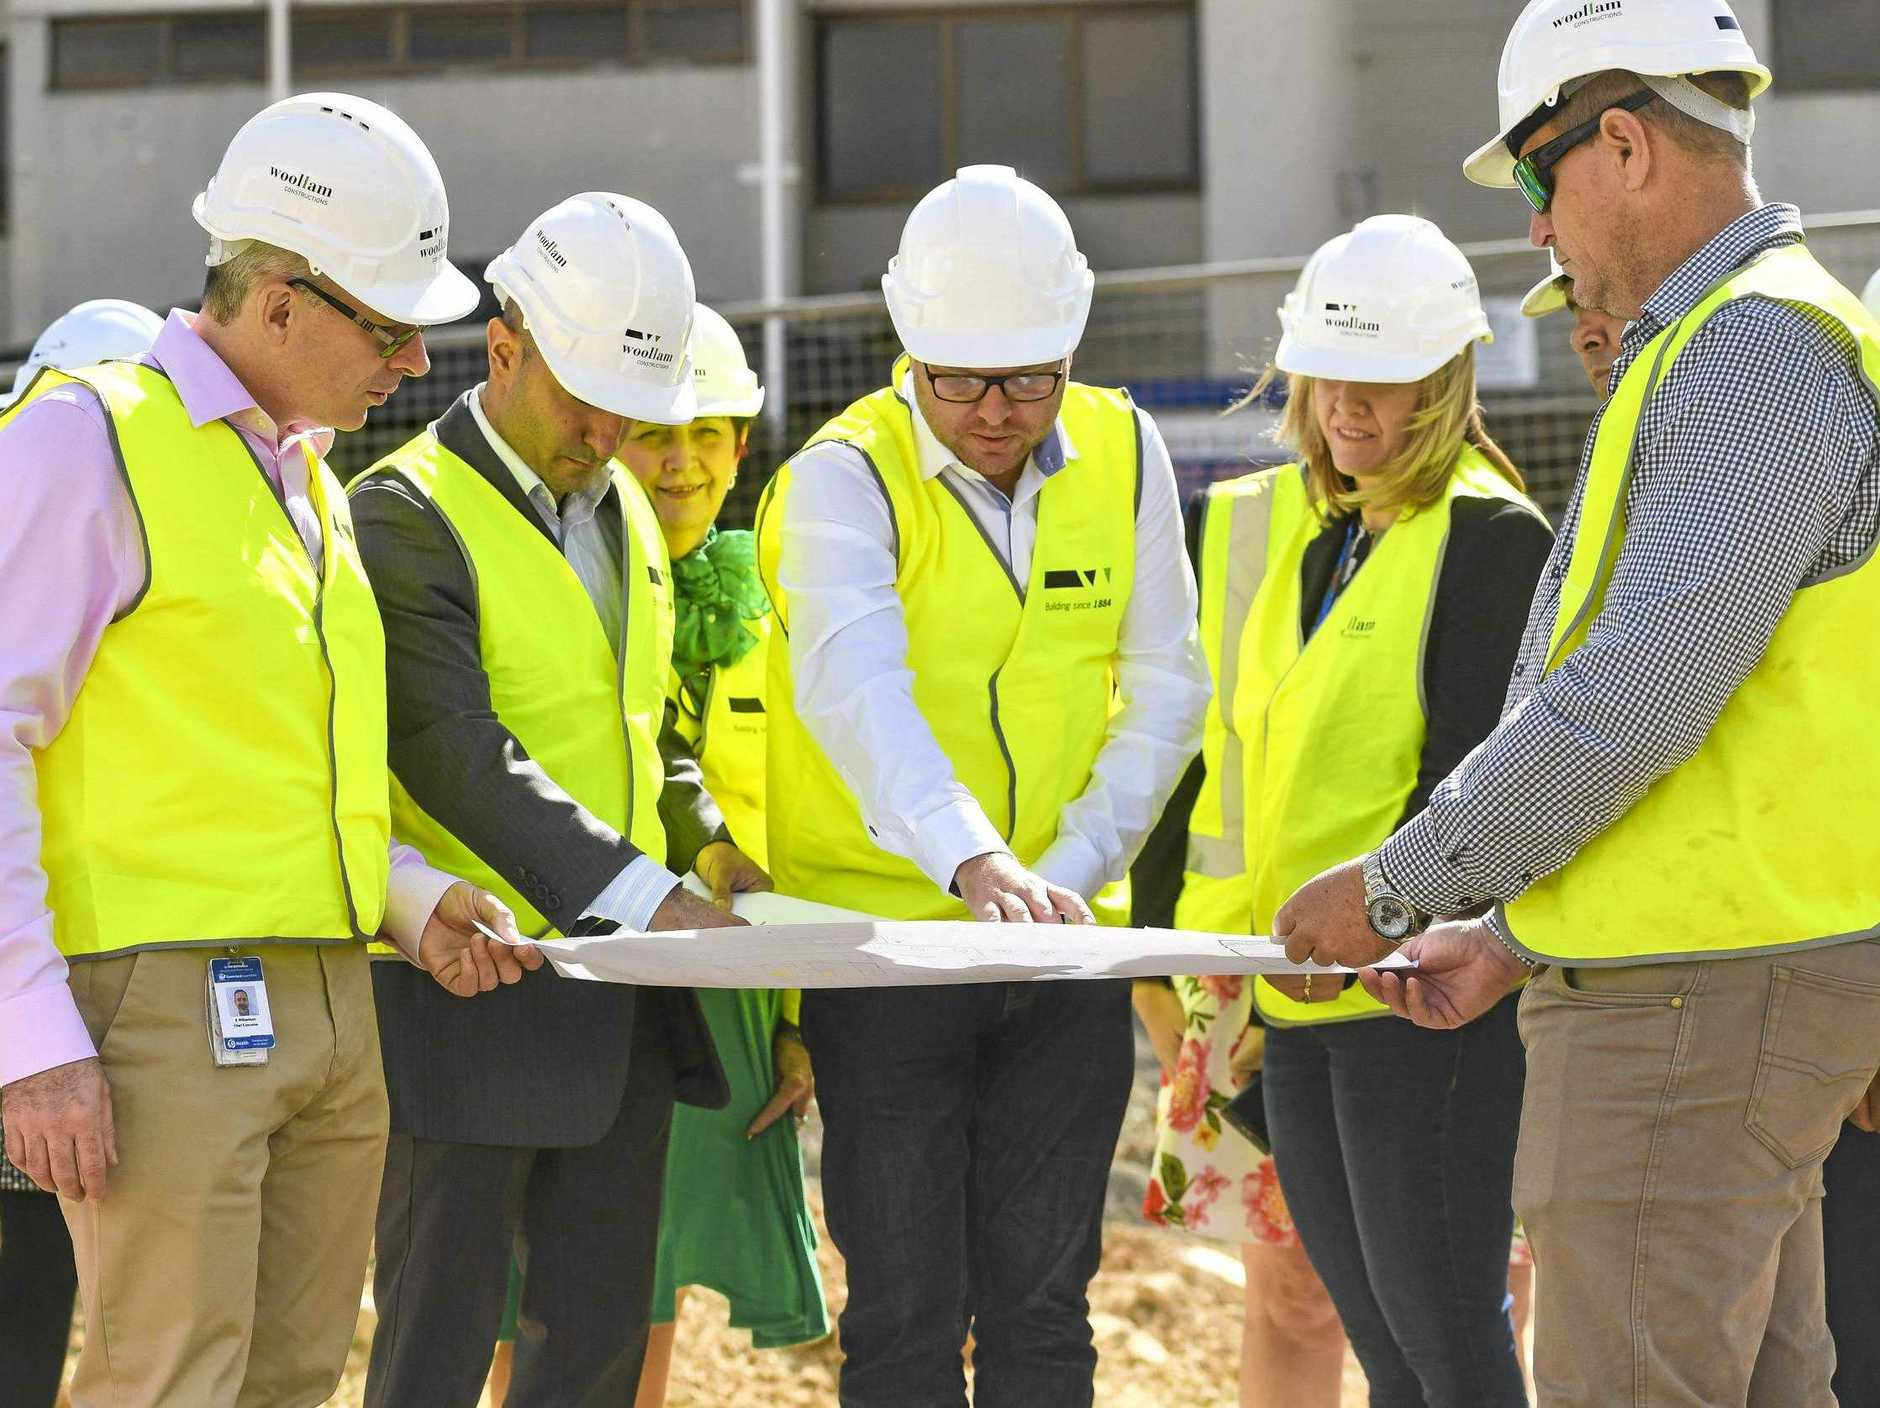 Central Queensland Hospital and Health Service chief executive Steve Williamson, board member of CQ hospital and health service PJ Sobhanian, project manager Jason Mulcahy, board member Tina Zawila and regional manager Clinton Bloomfield updates media on the upgrades to Gladstone's new emergency department.